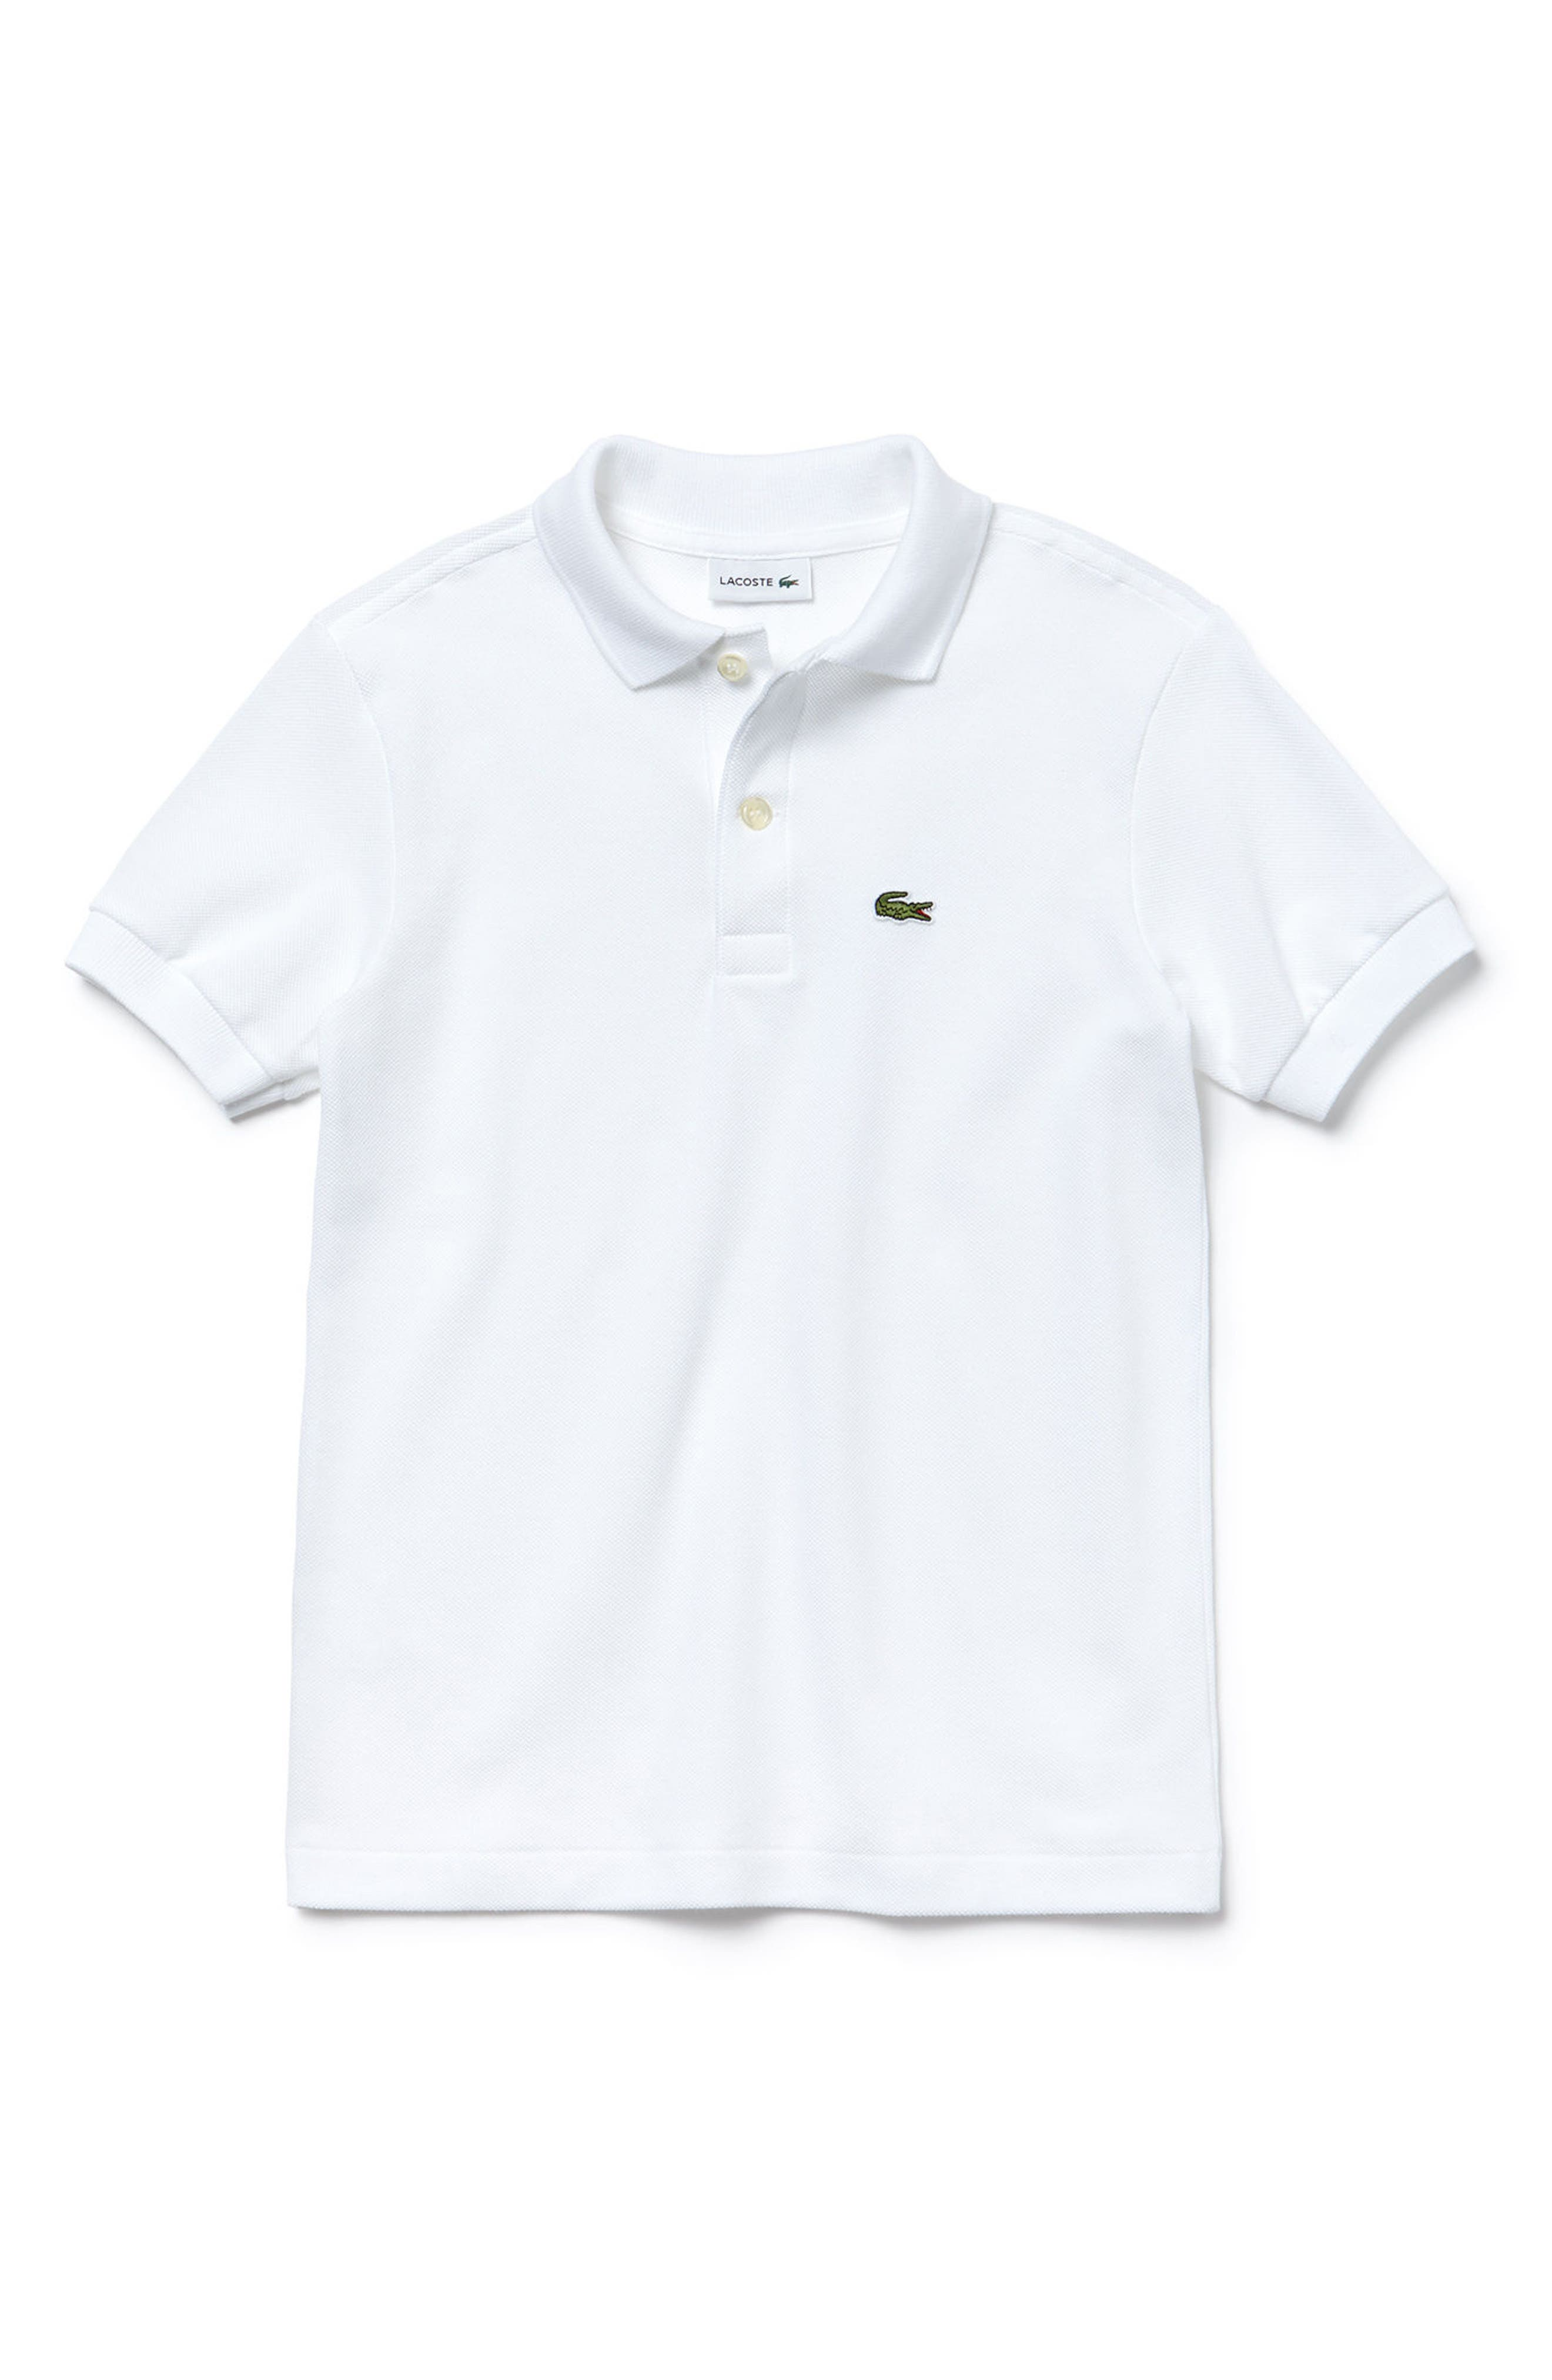 2a736d15aae39a Boys' Lacoste Clothing: Hoodies, Shirts, Pants & T-Shirts | Nordstrom